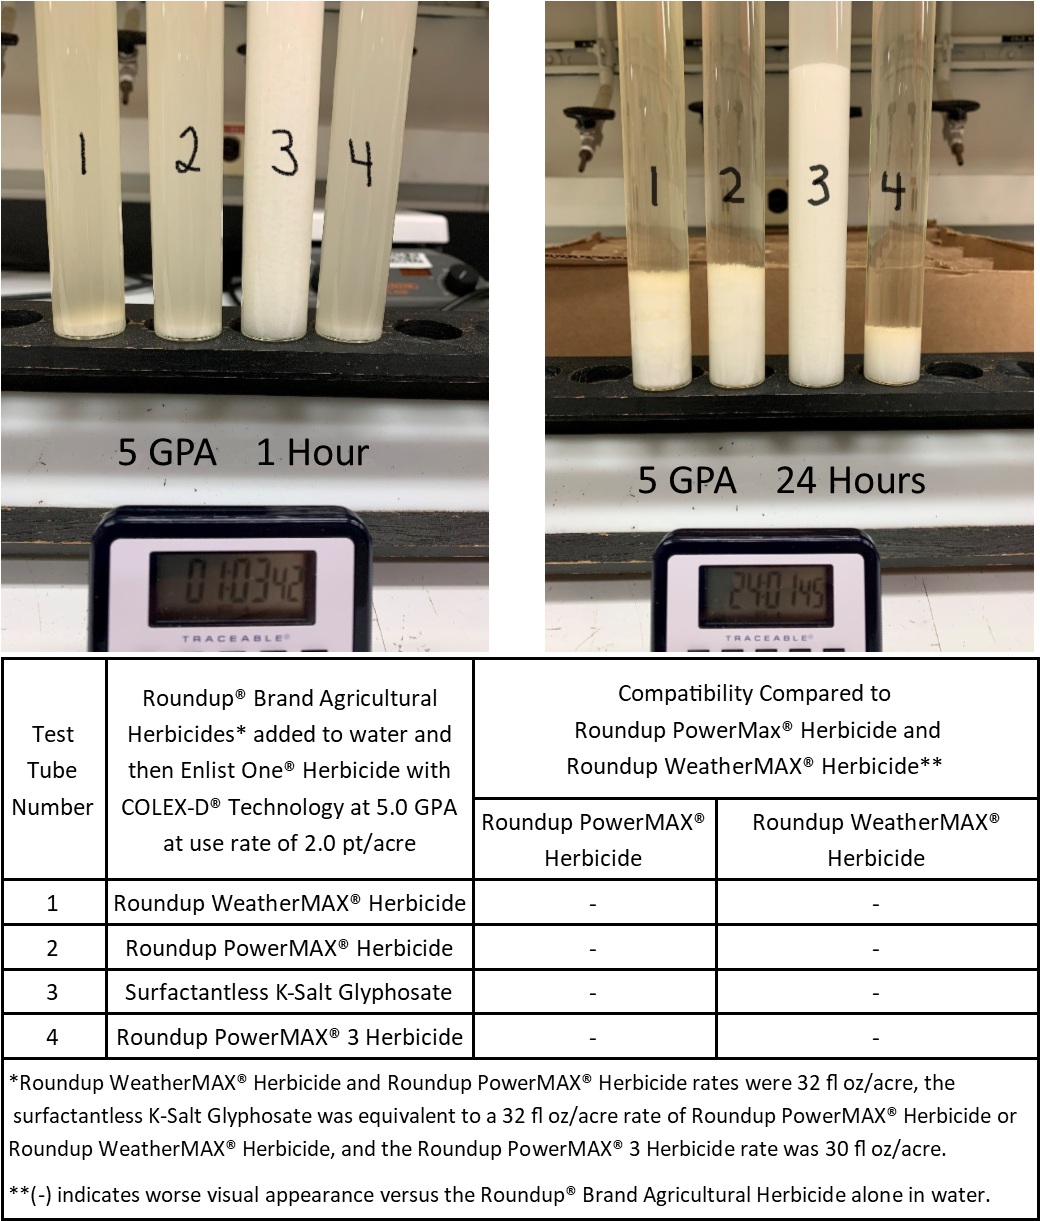 Figure 2. Compatibility of Roundup® brand glyphosate-only agricultural herbicides mixed with Enlist One® herbicide with COLEX-D® technology at 5 GPA